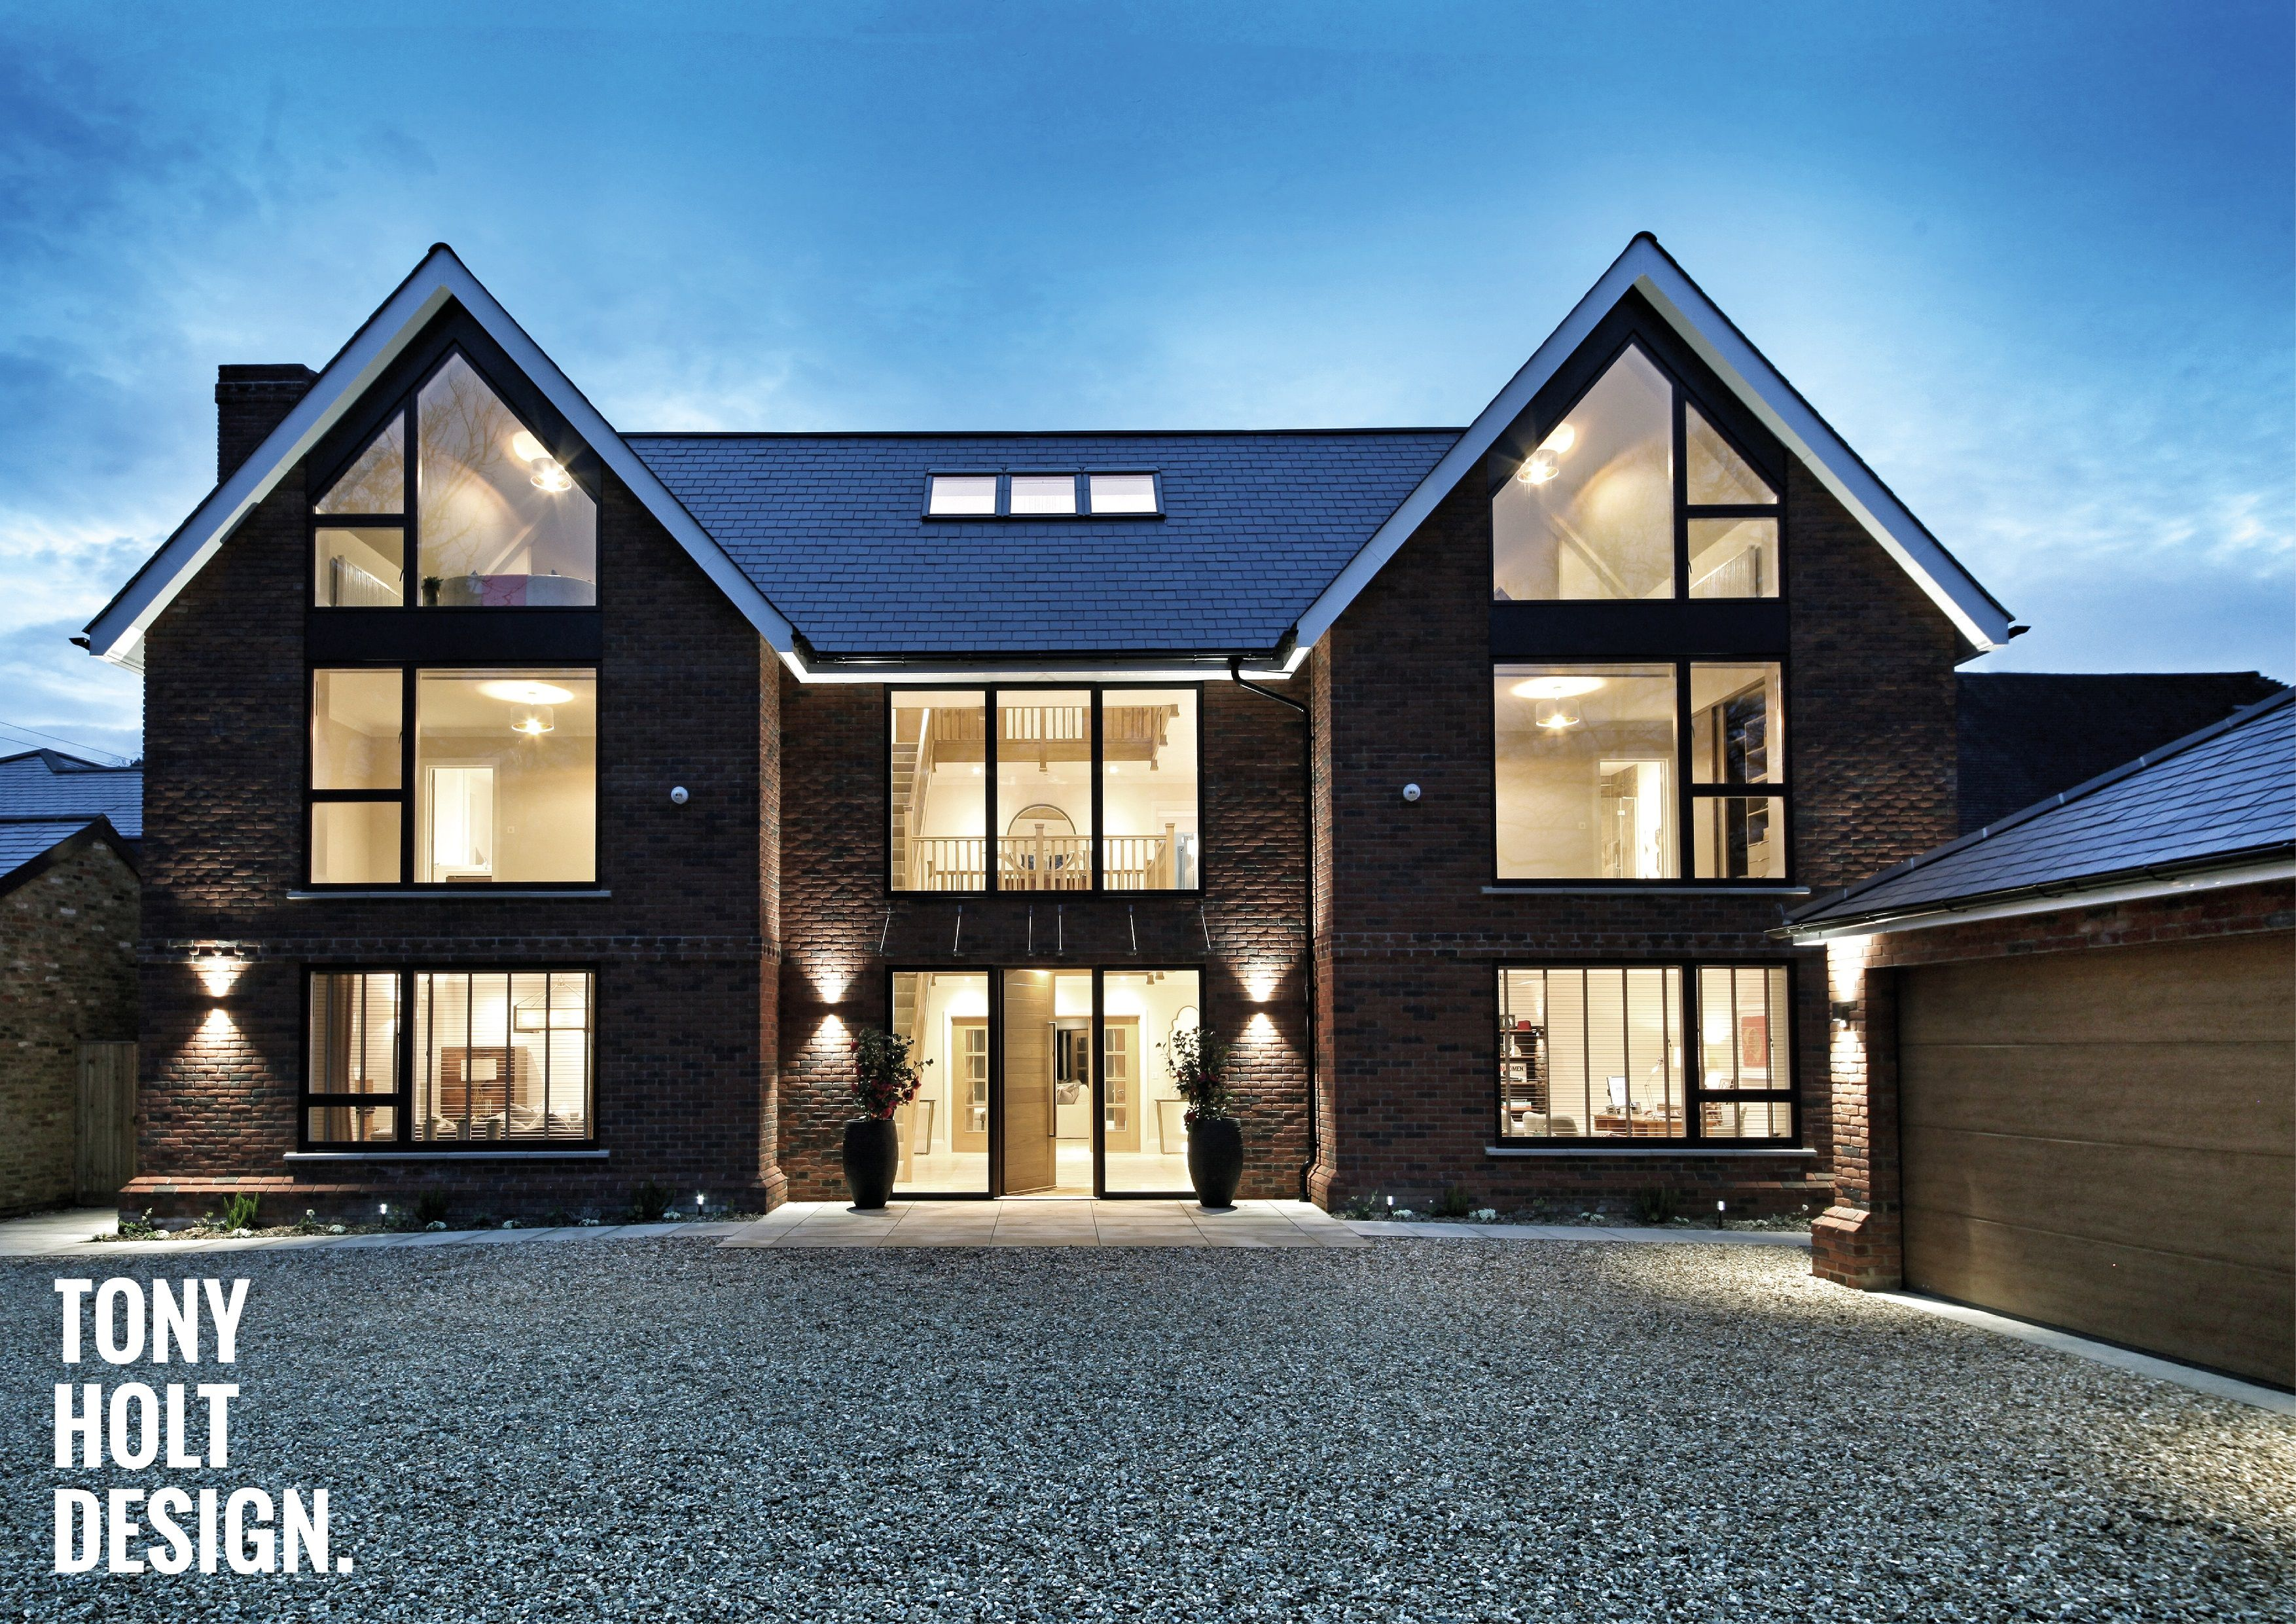 Tony Holt Design Self Build New Build In Berkshire Luxury House Designs Self Build Houses Contemporary House Design